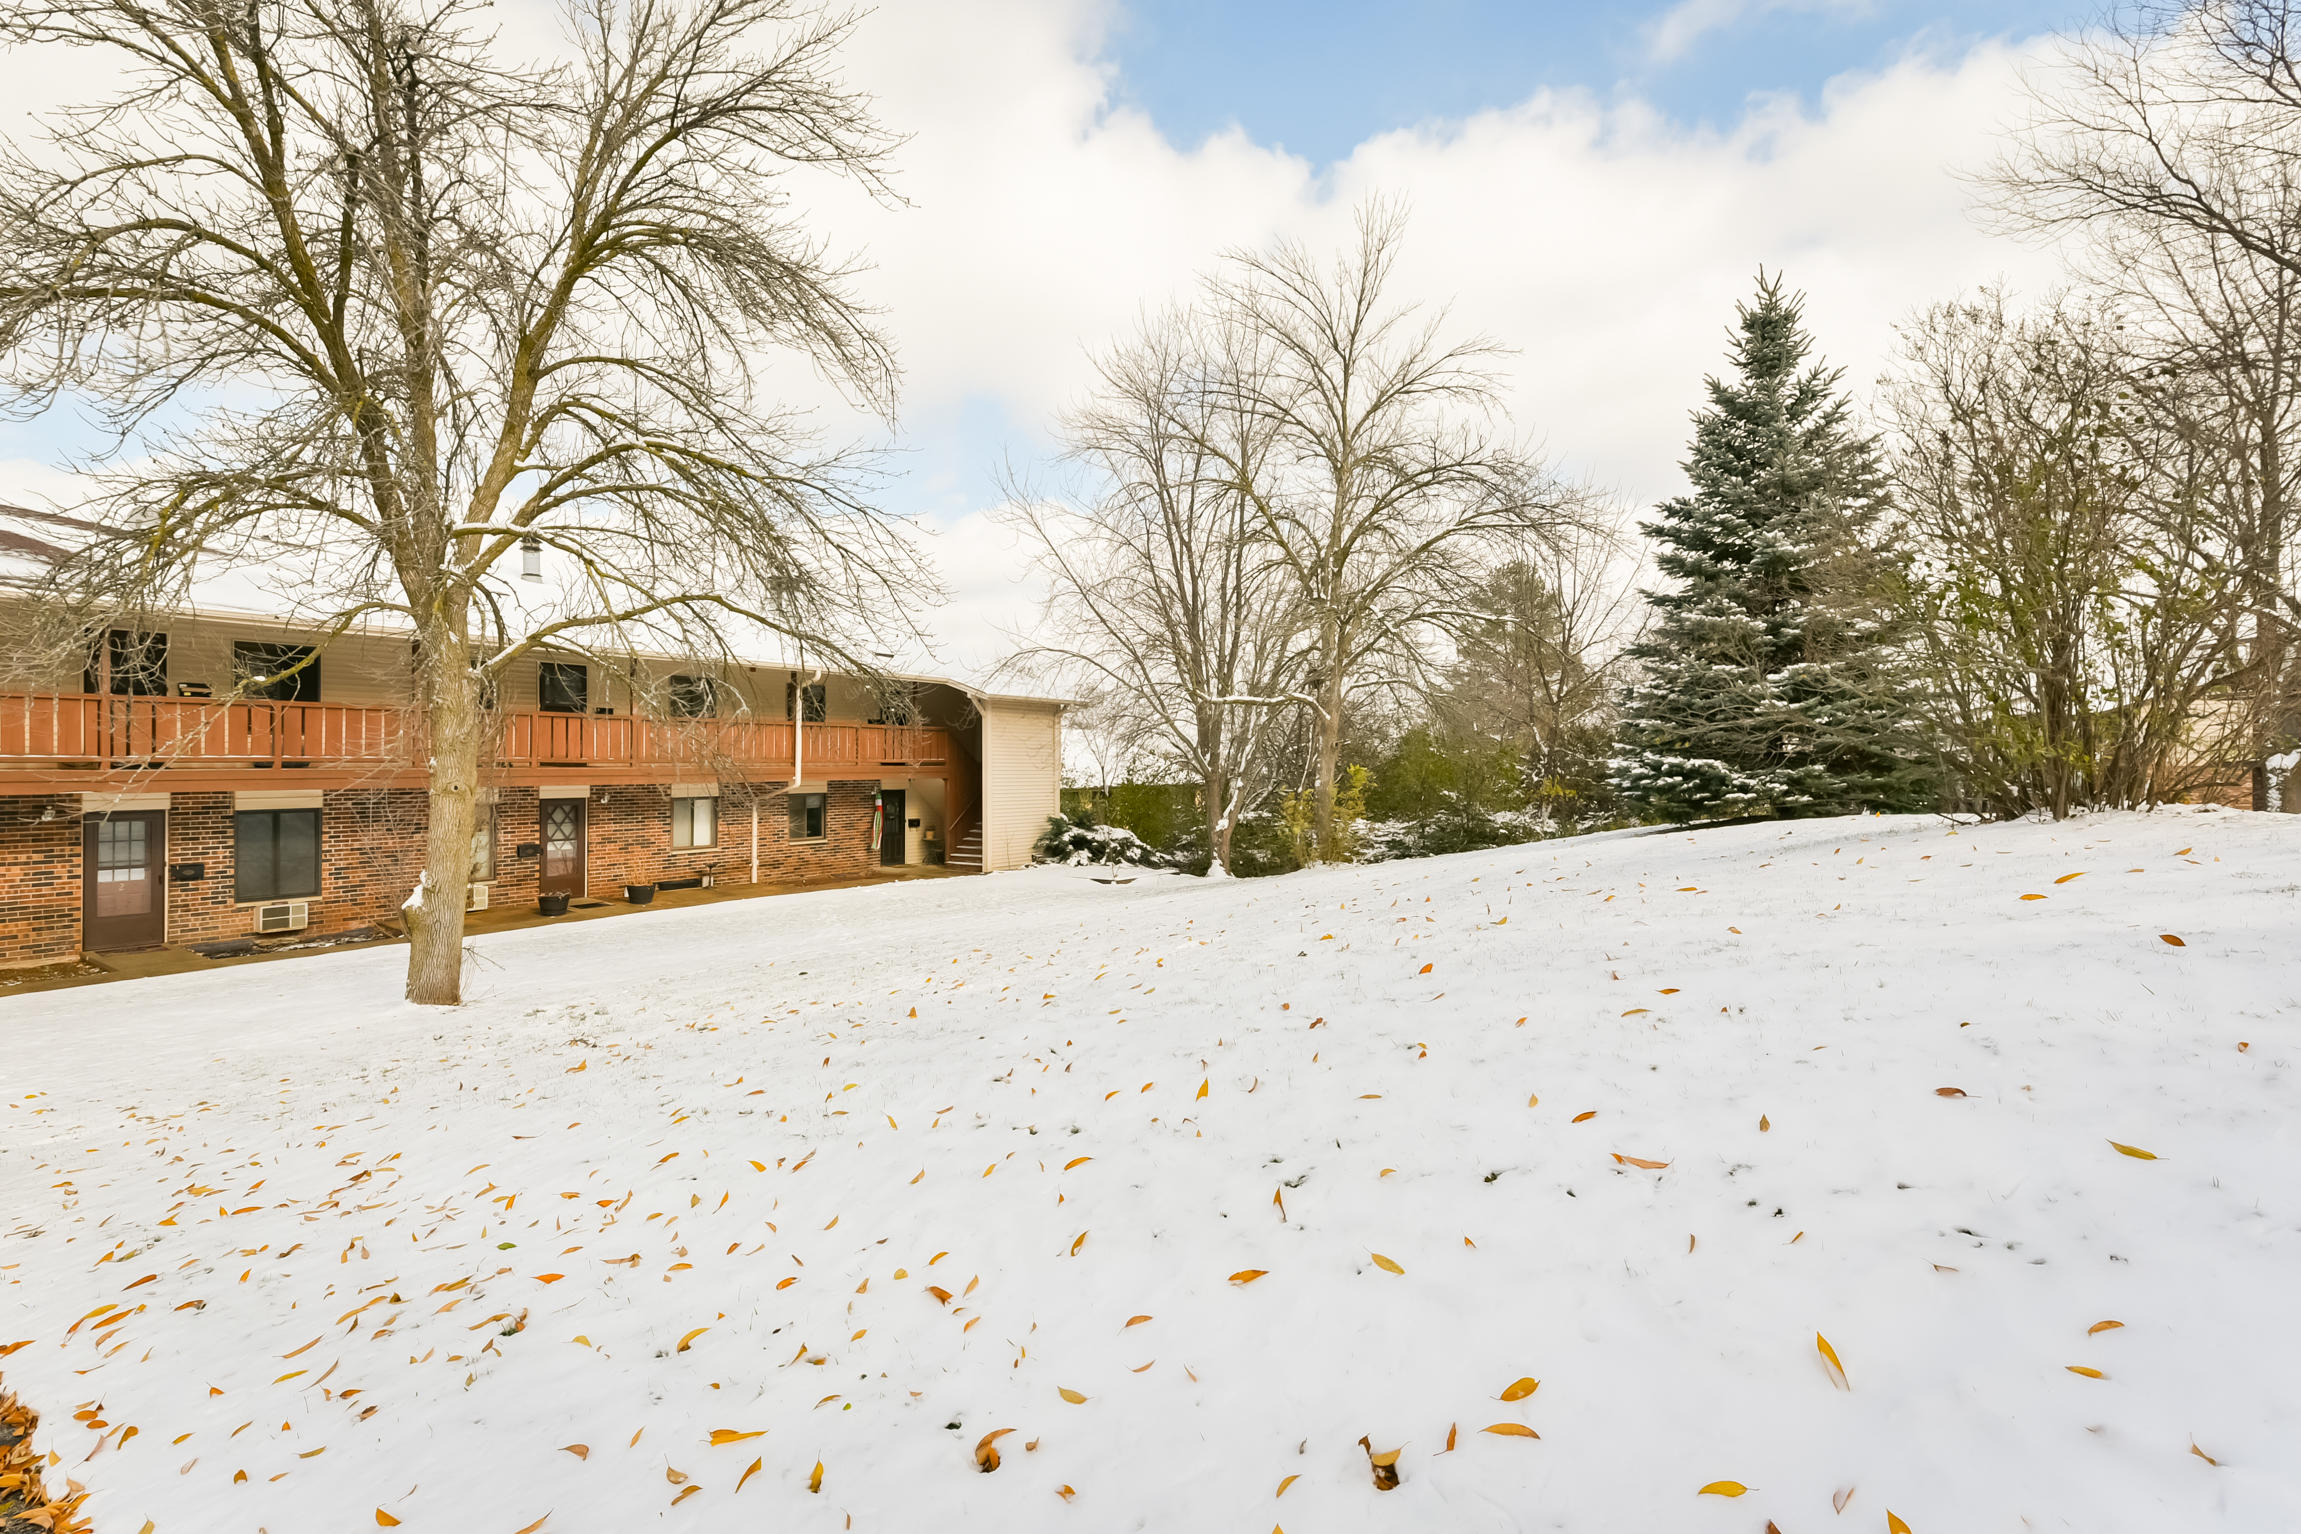 1356 Greenhedge Rd, Pewaukee, Wisconsin 53072, 2 Bedrooms Bedrooms, 4 Rooms Rooms,1 BathroomBathrooms,Condominiums,For Sale,Greenhedge Rd,2,1614238